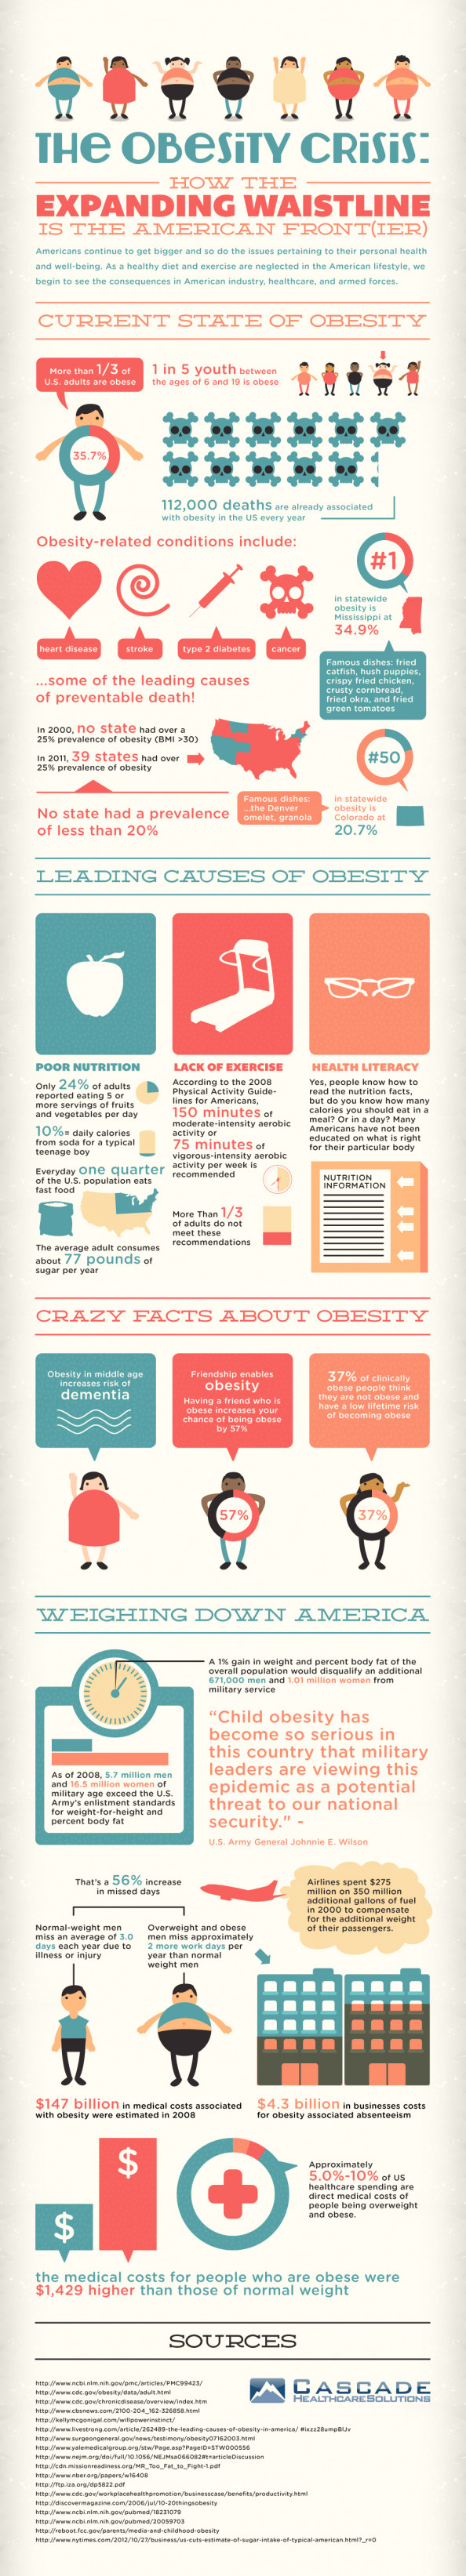 The Obesity Crisis Infographic